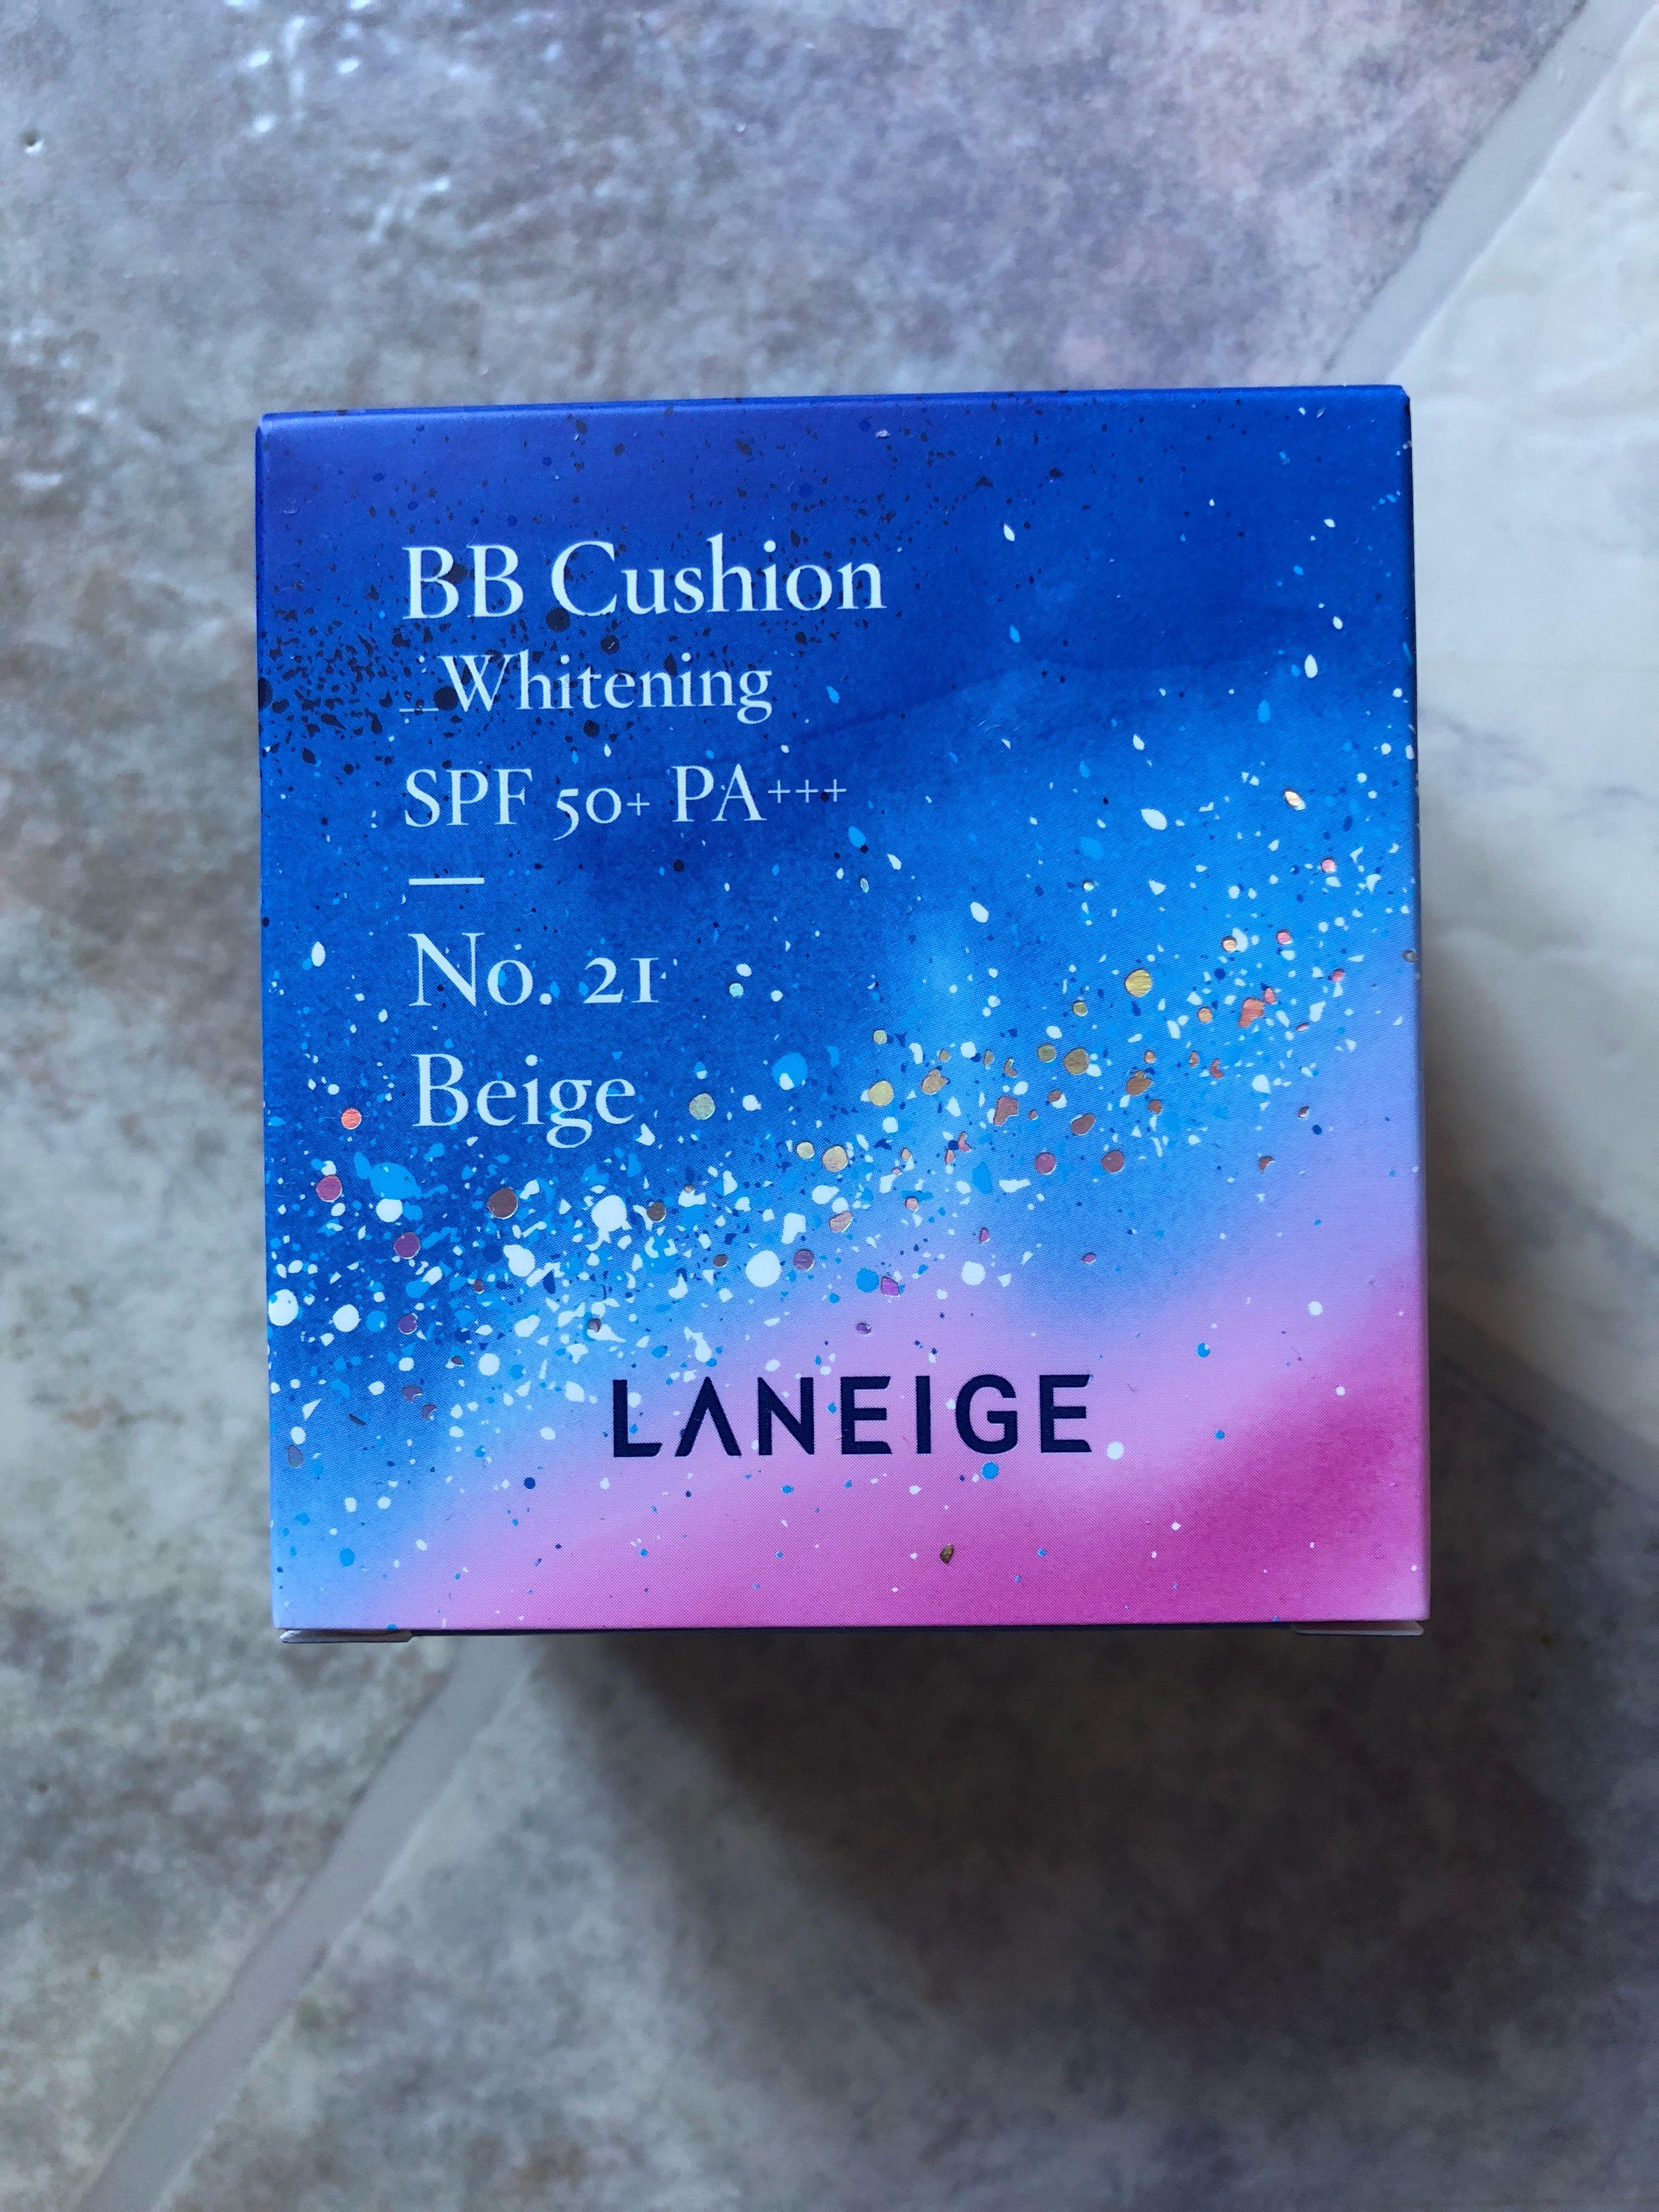 Laneige BB Cushion SPF 50 + PA+++ No.21 Beige + REFILL